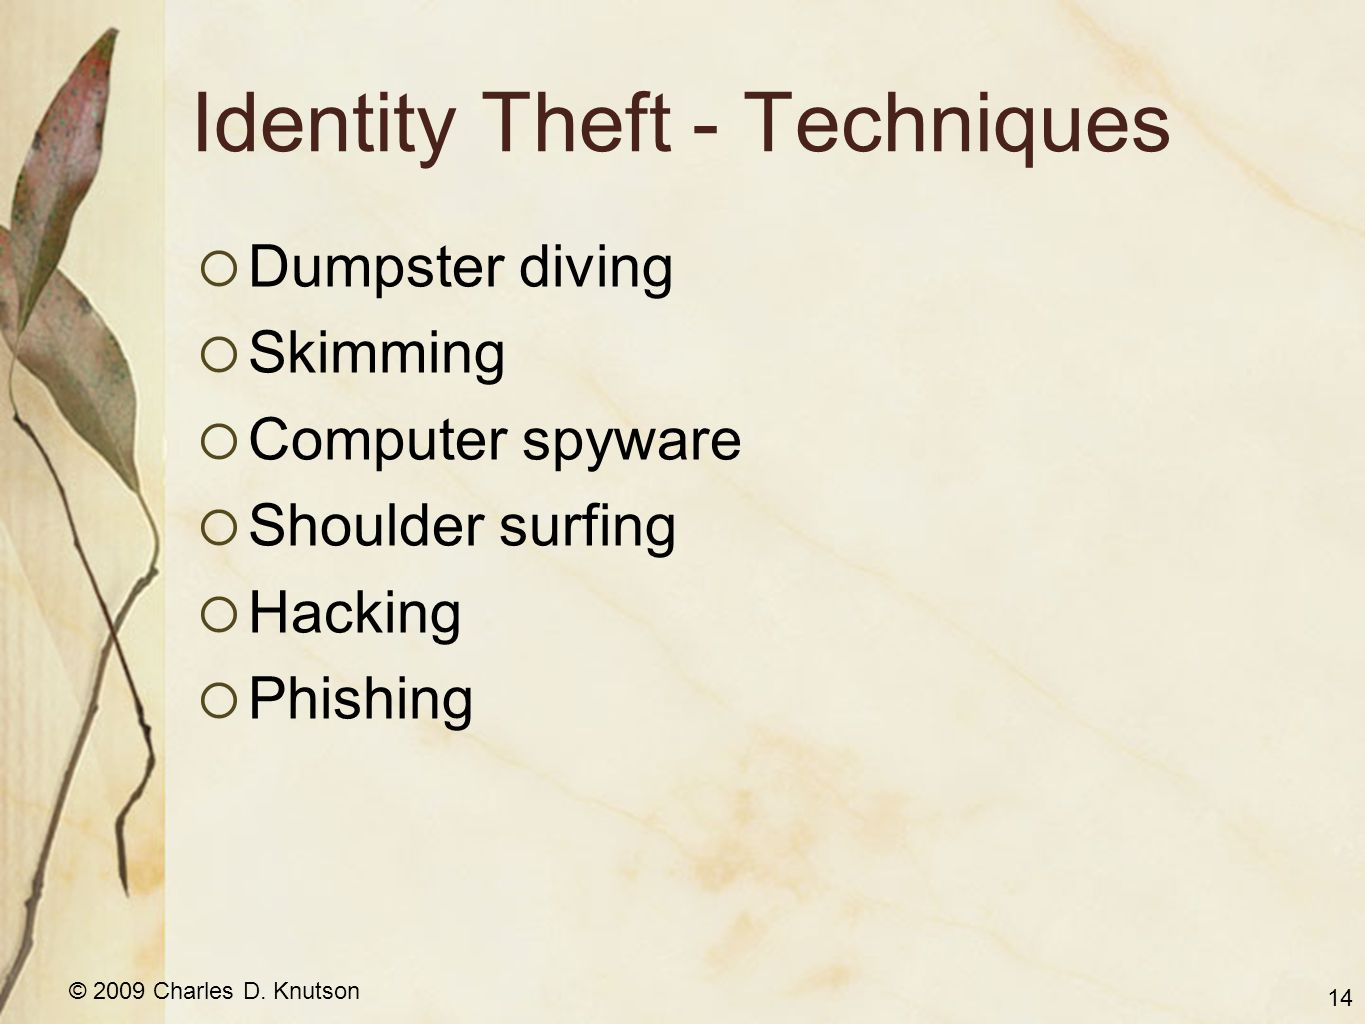 © 2009 Charles D. Knutson Identity Theft - Techniques Dumpster diving Skimming Computer spyware Shoulder surfing Hacking Phishing 14